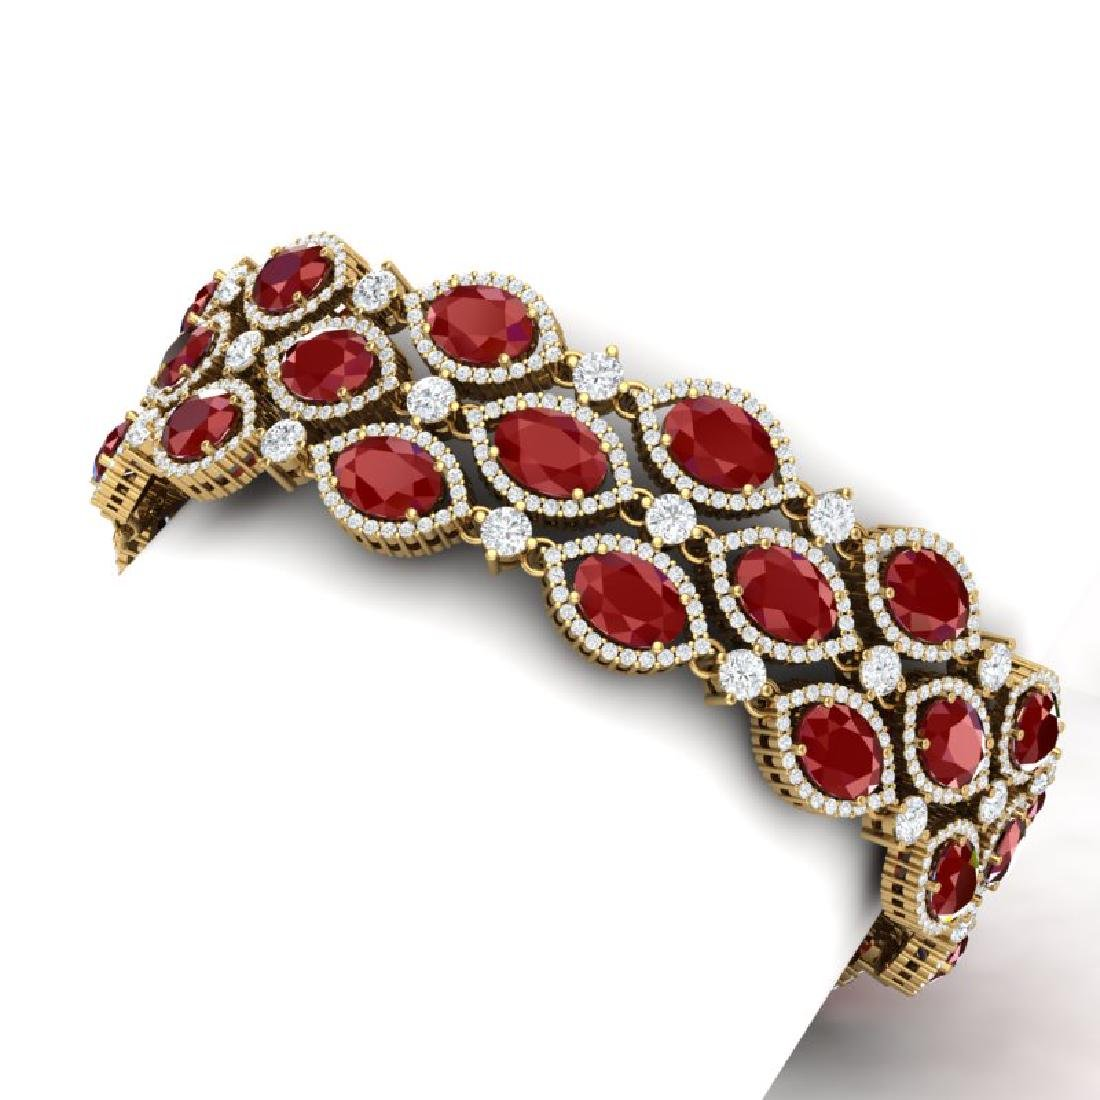 47.84 CTW Royalty Ruby & VS Diamond Bracelet 18K Yellow - 2